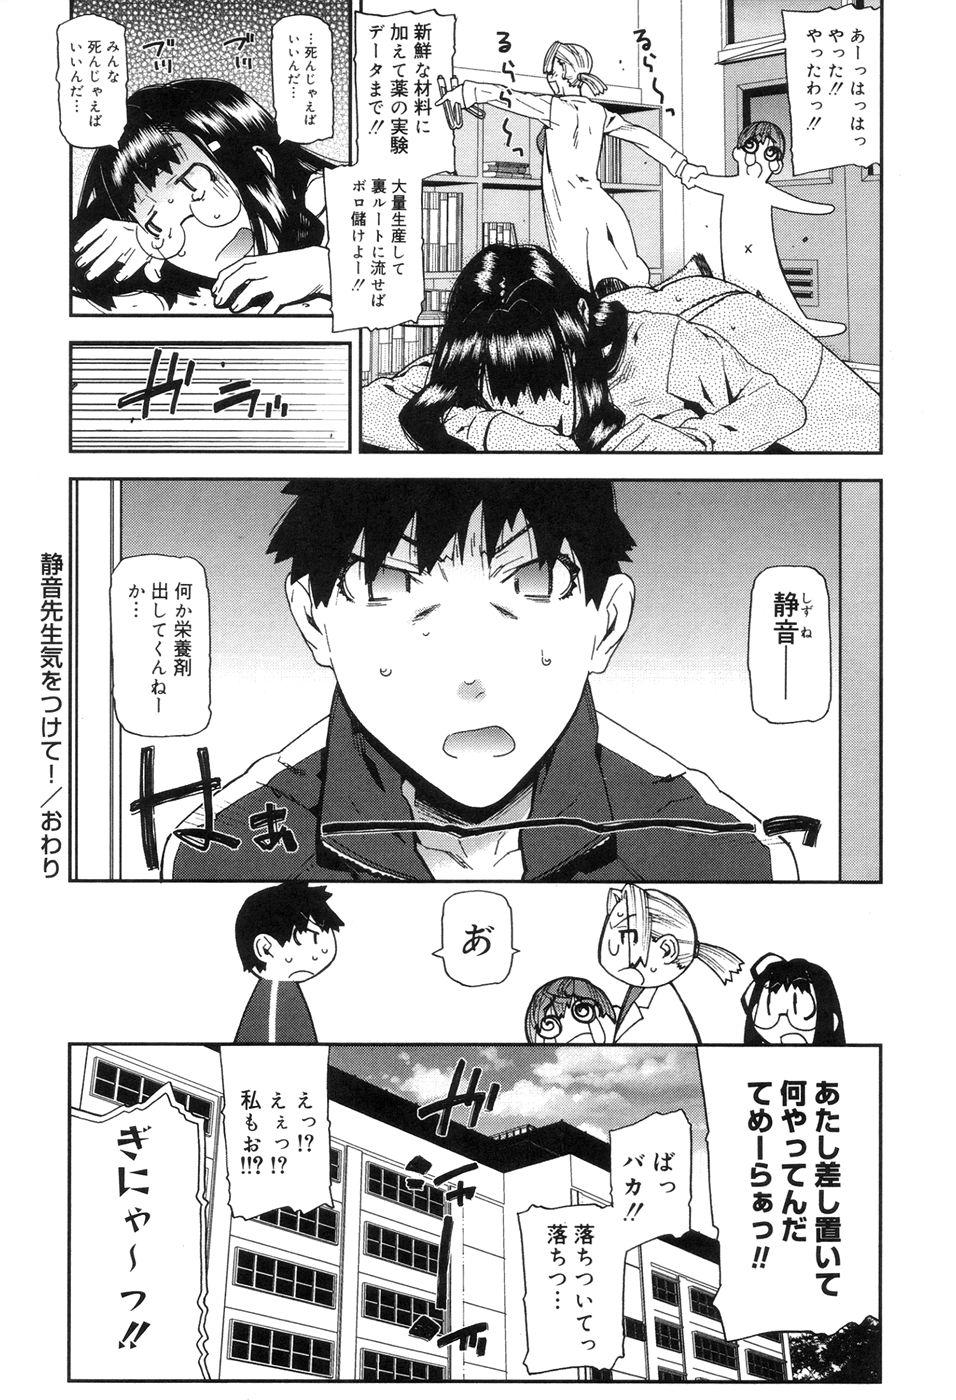 Onee-chan to issho 125